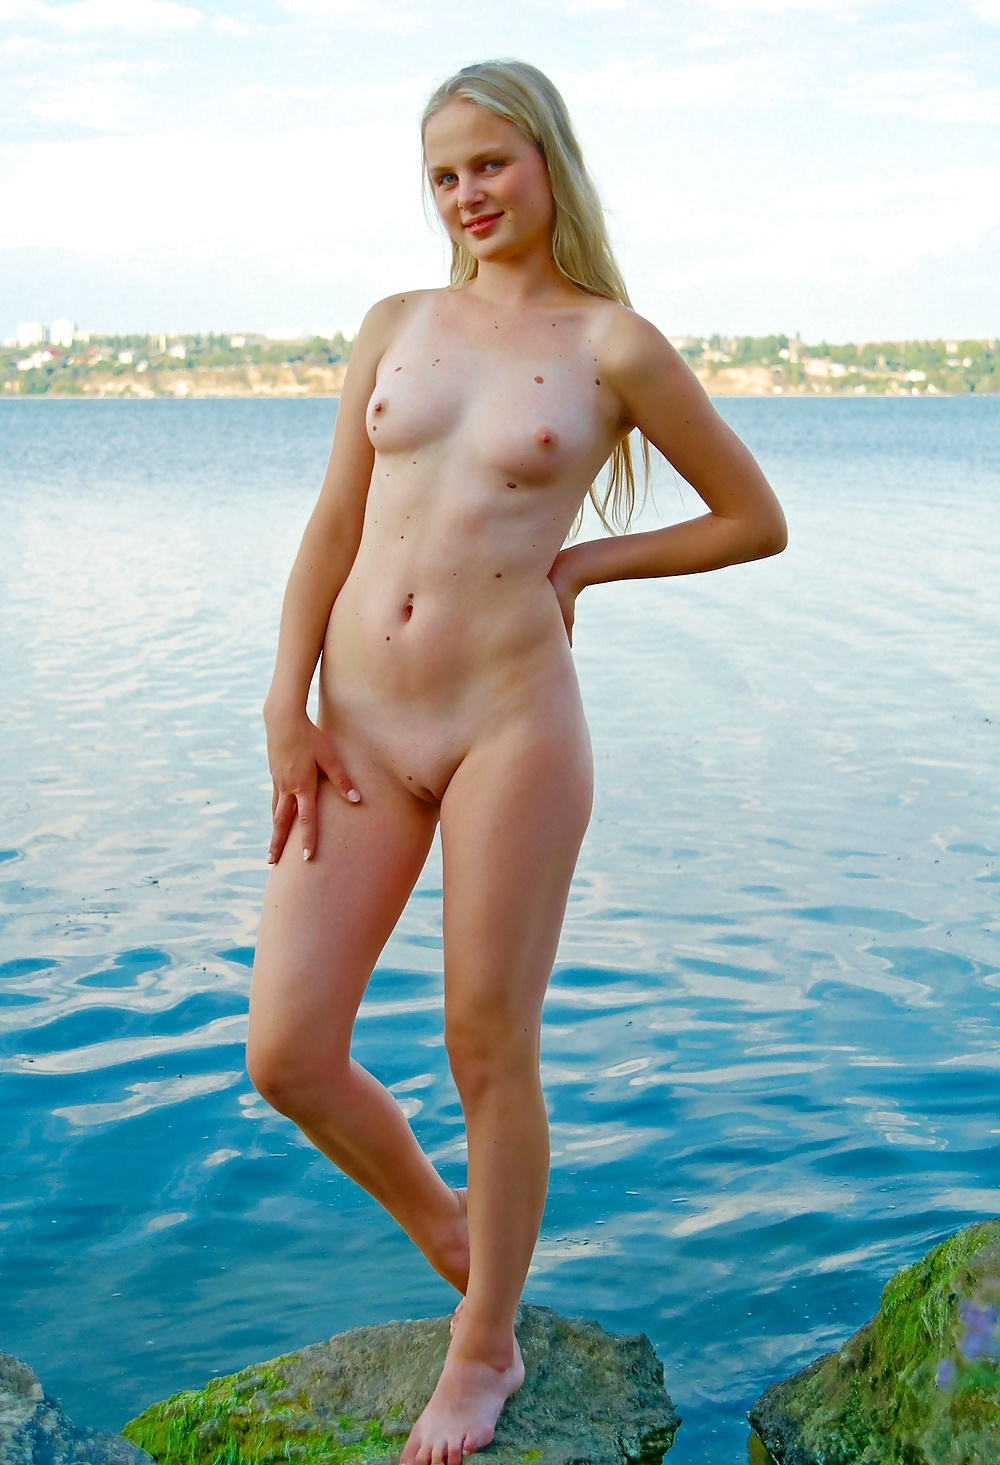 UK Public Nudity  Amateur nudes outdoors and english